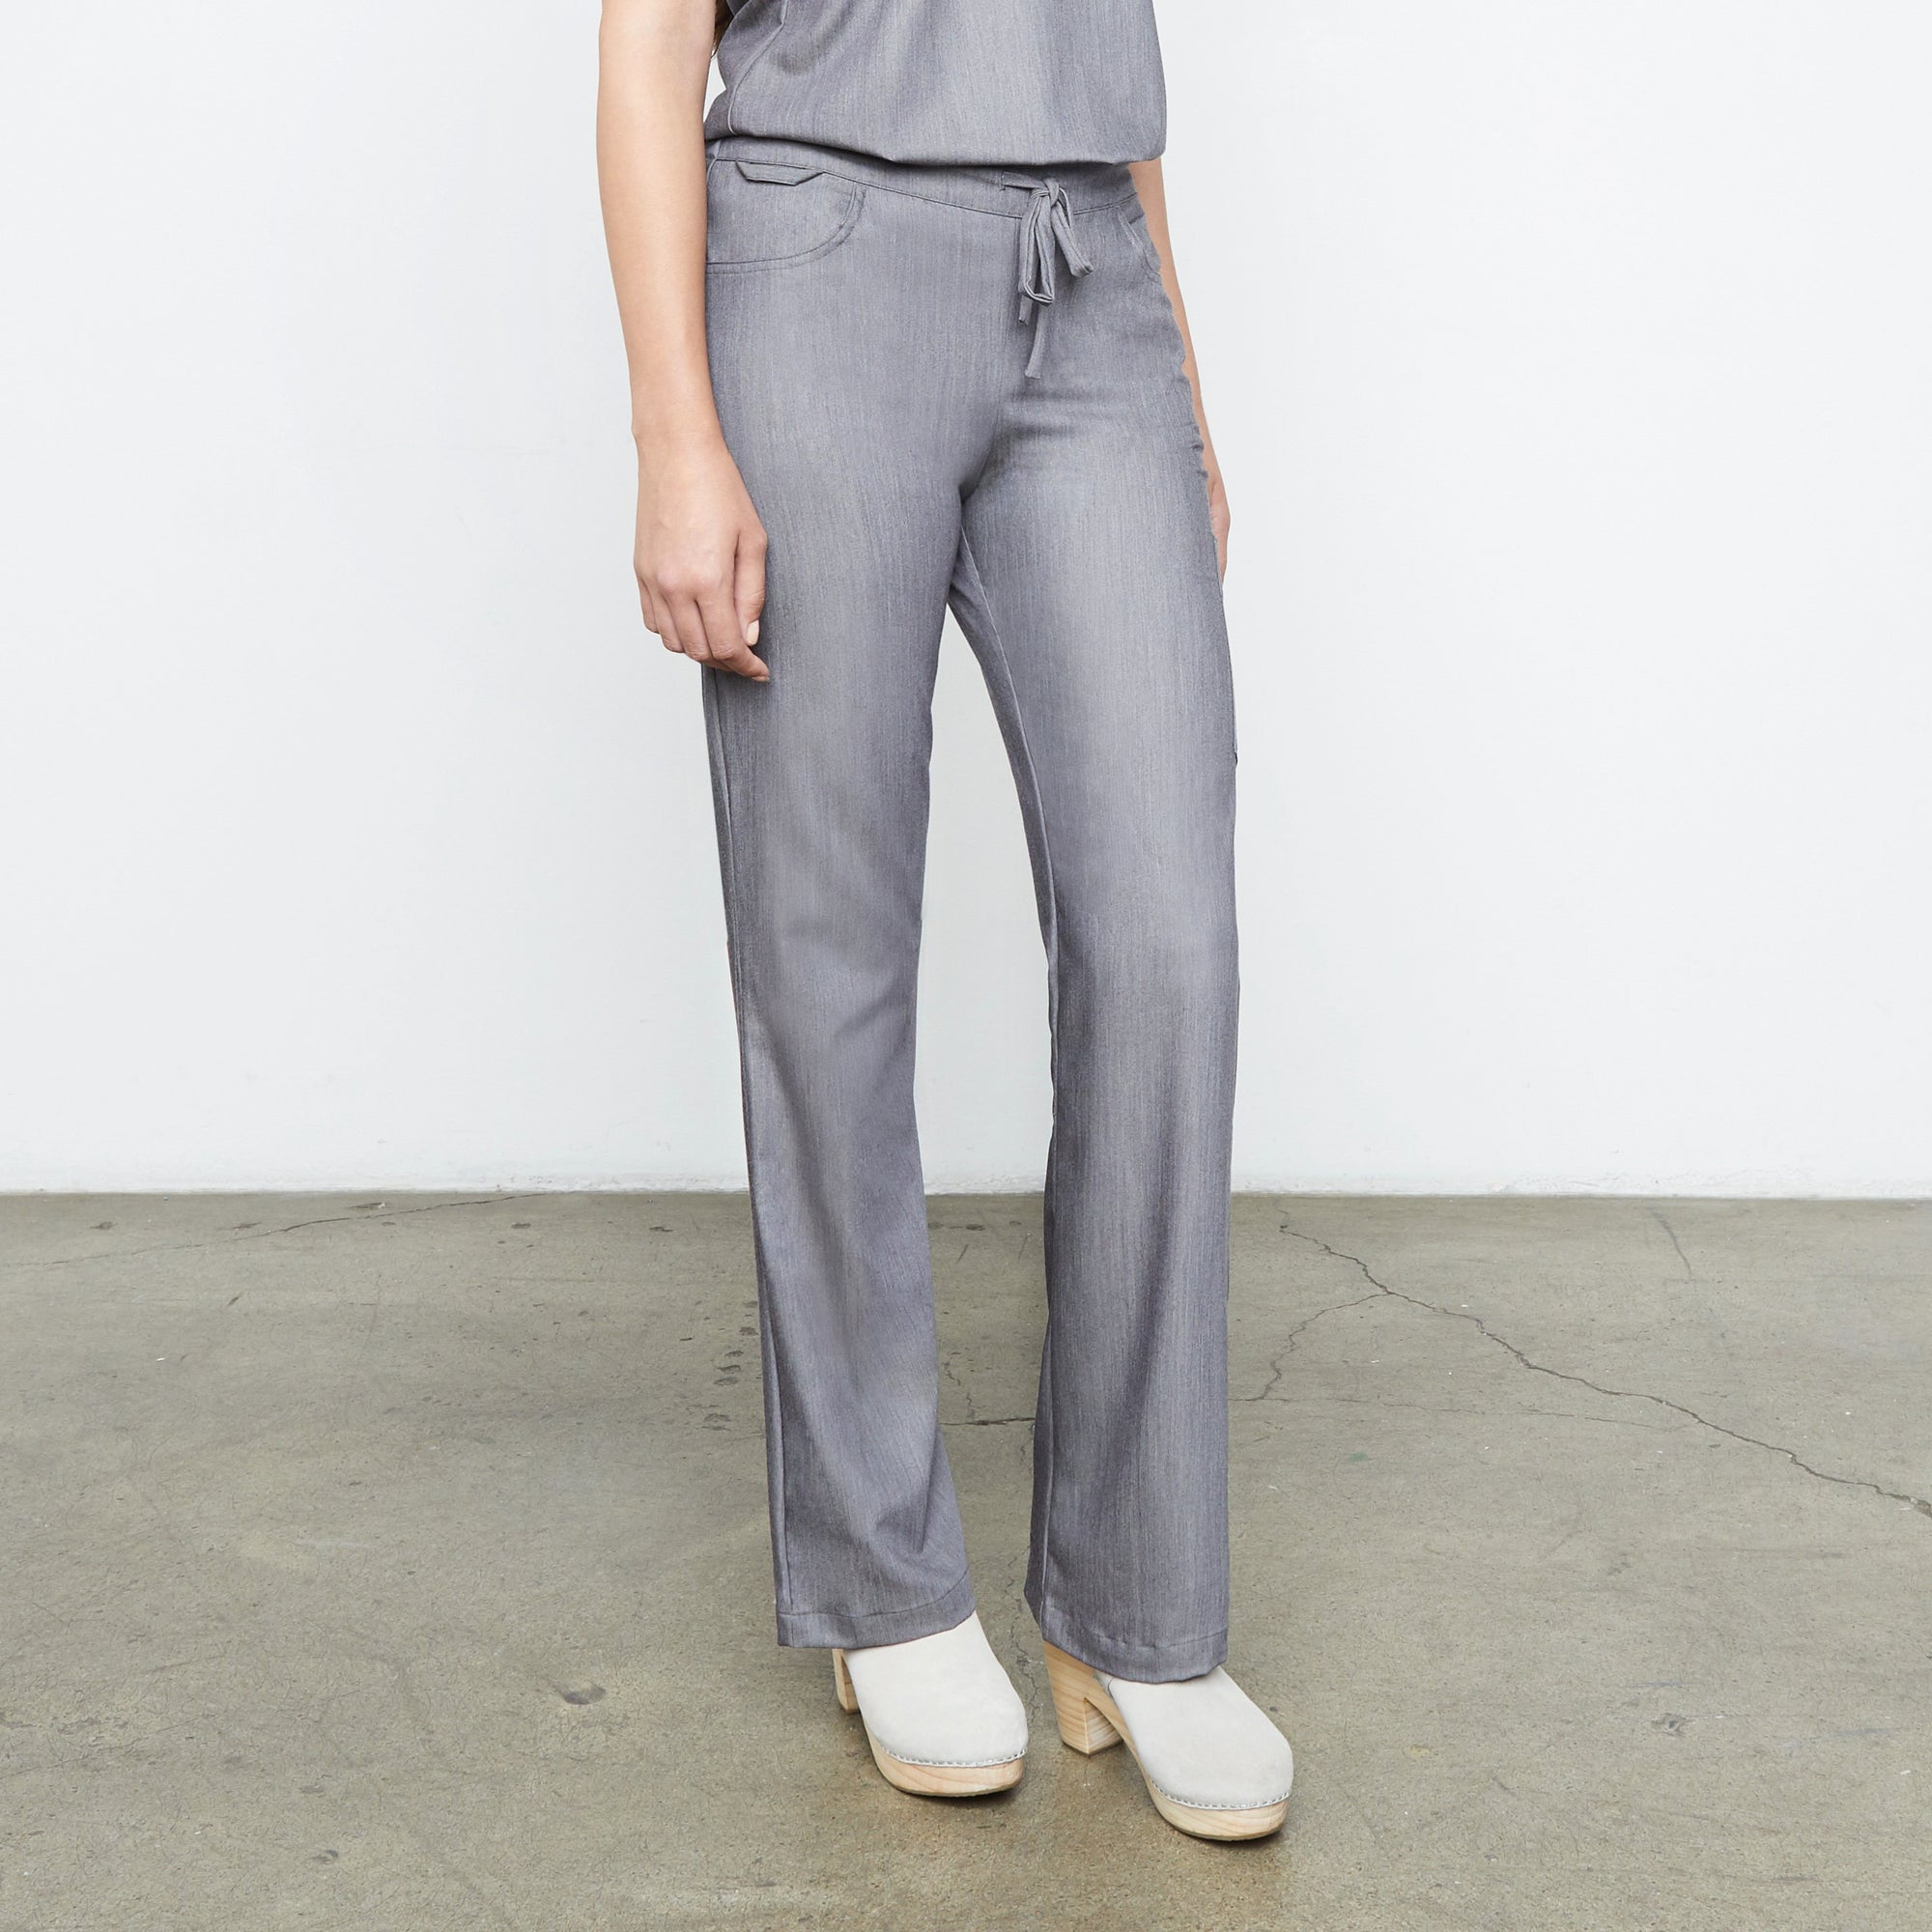 Maverick Pant (Granite Smoothie) | Fabled fashion scrub store has cute scrubs for sale, including fashion scrub pants and cute scrub pants.